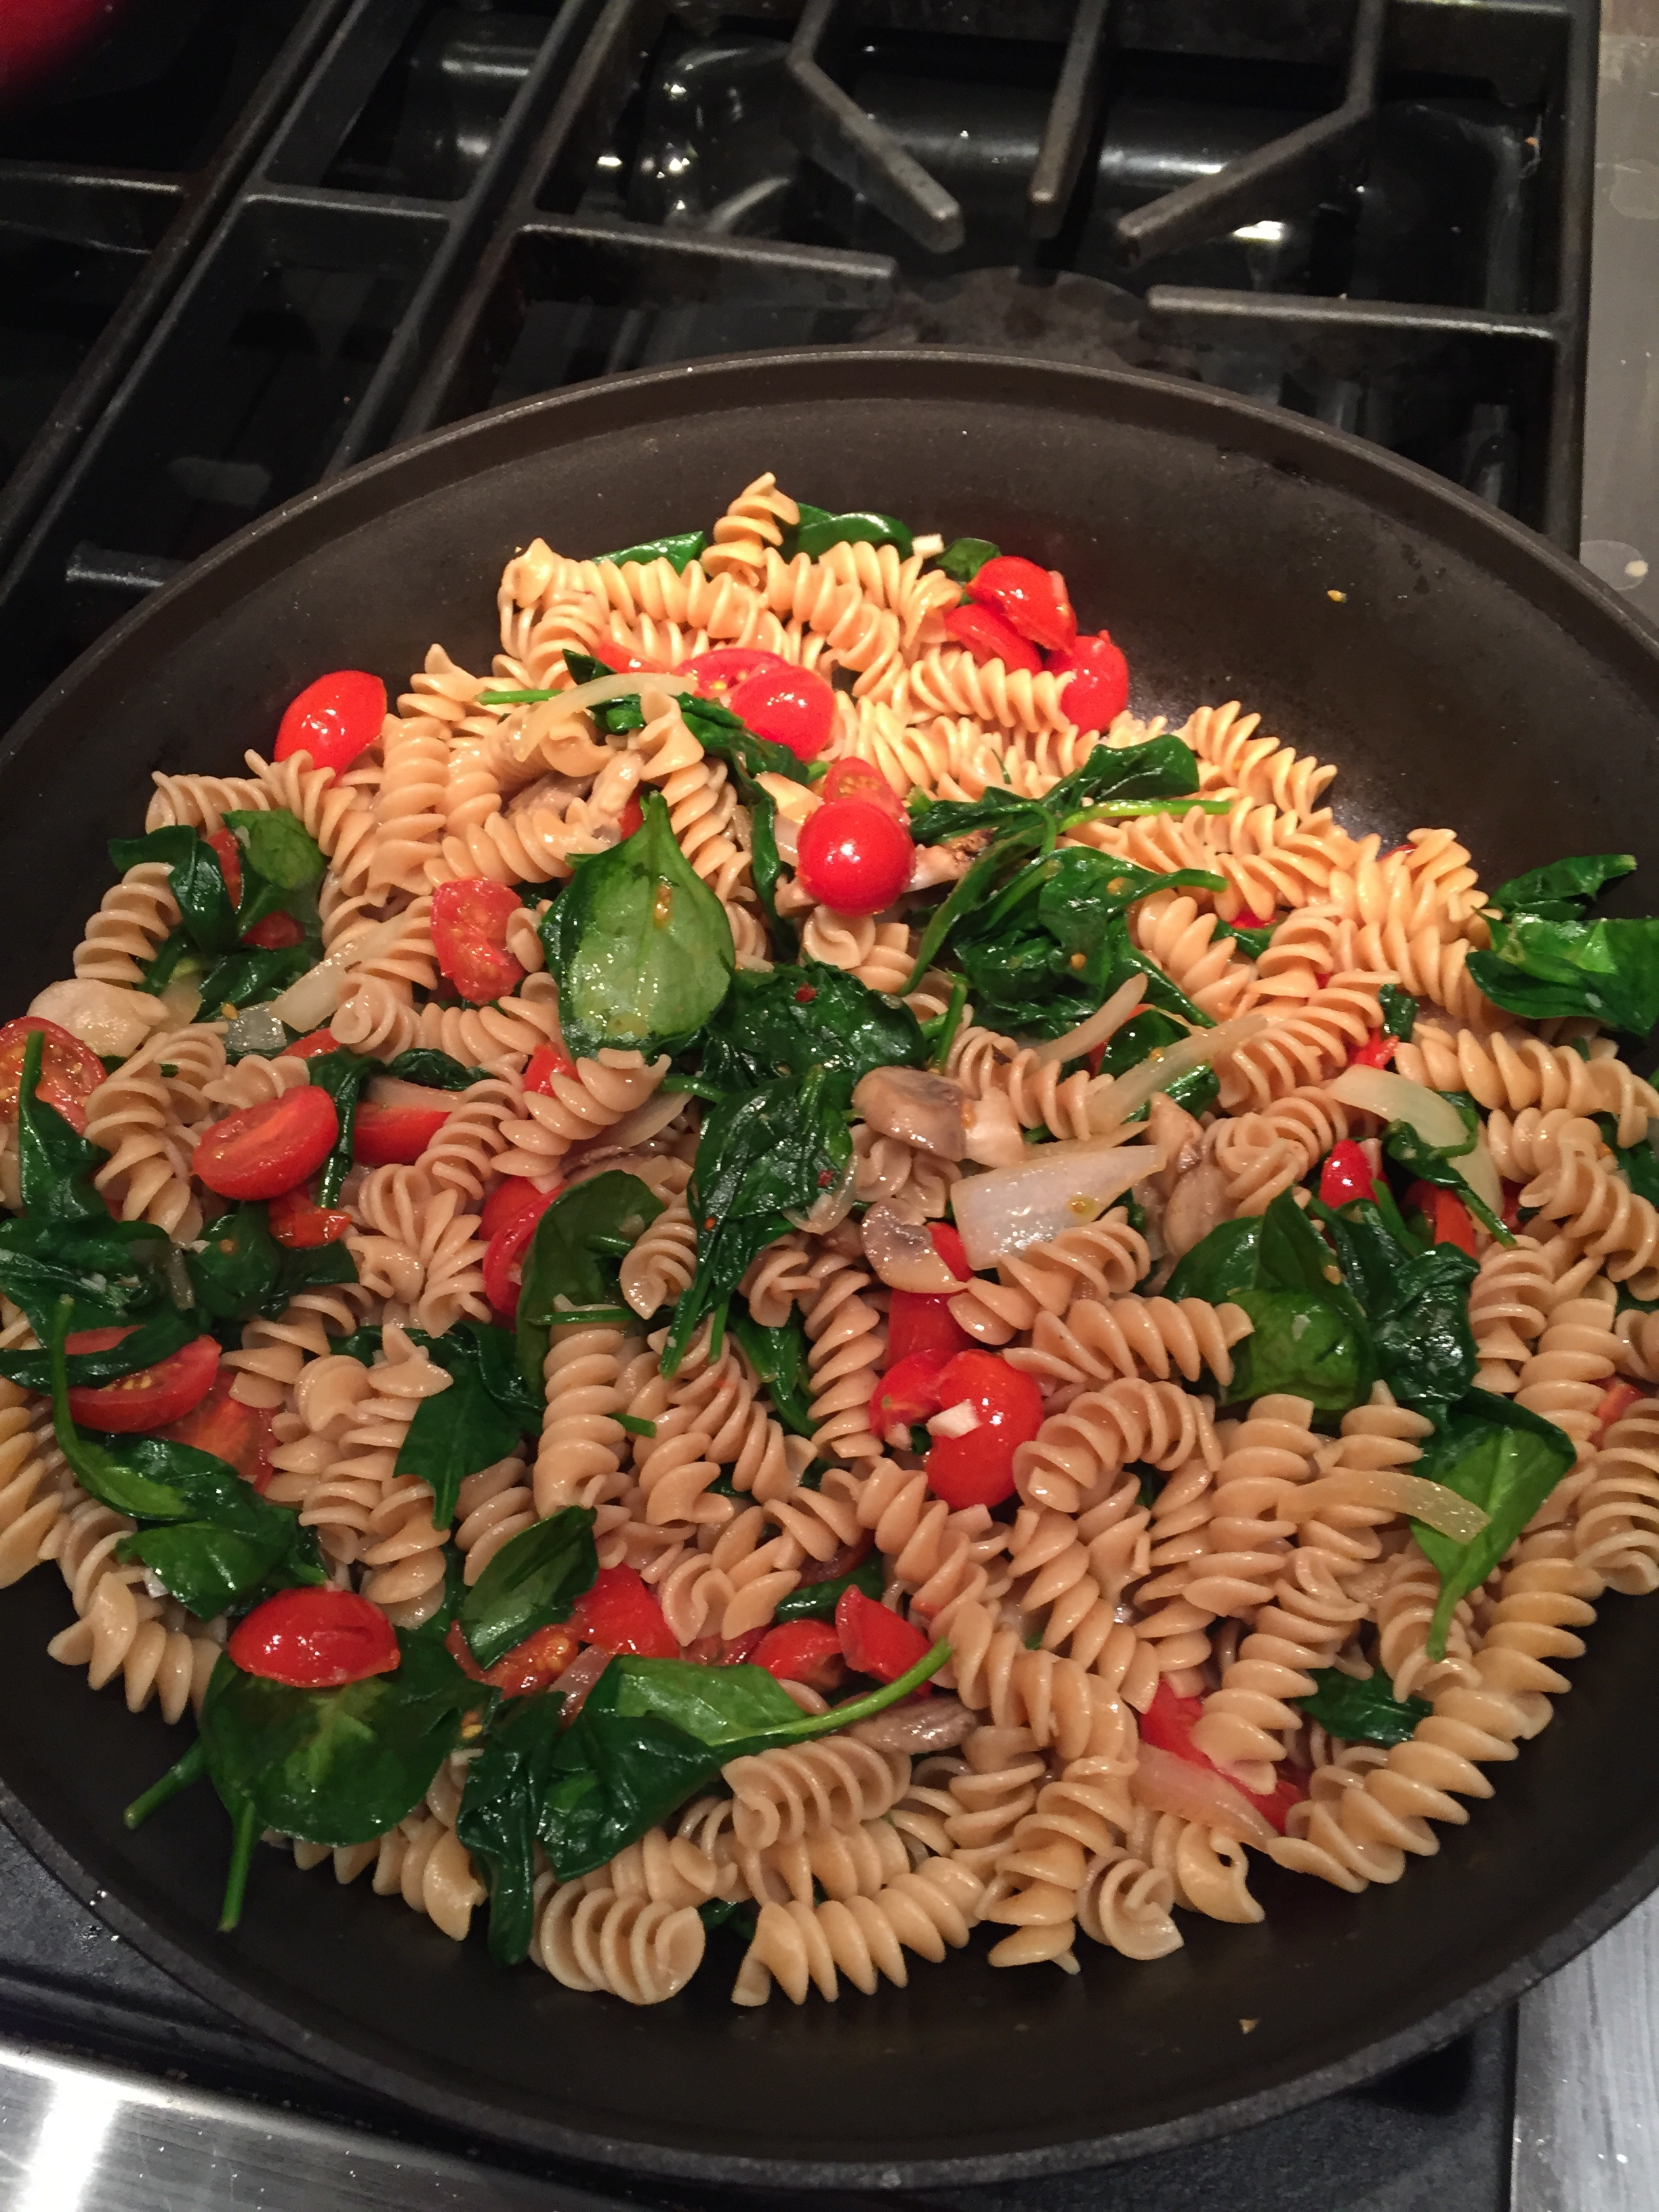 Click here to get Giada's recipe for Fusilli and Asiago Cheese.  Surprised she doesn't emphasize using whole wheat pasta...but as you can see above, even whole wheat pasta looks beautiful and delicious with this recipe!